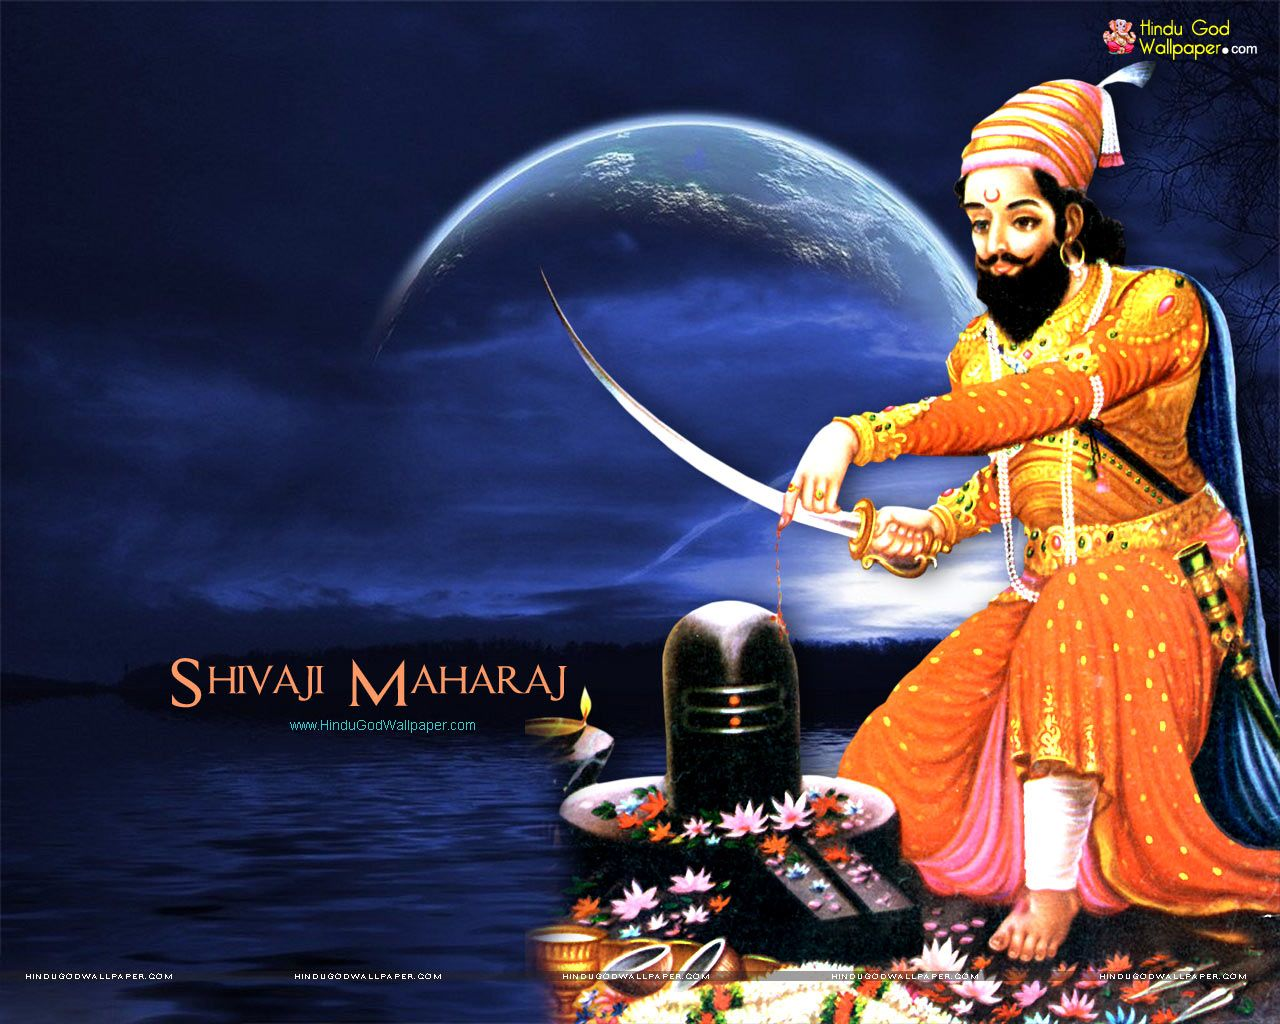 Hd wallpaper shivaji maharaj - New Shivaji Maharaj Wallpaper Free Download